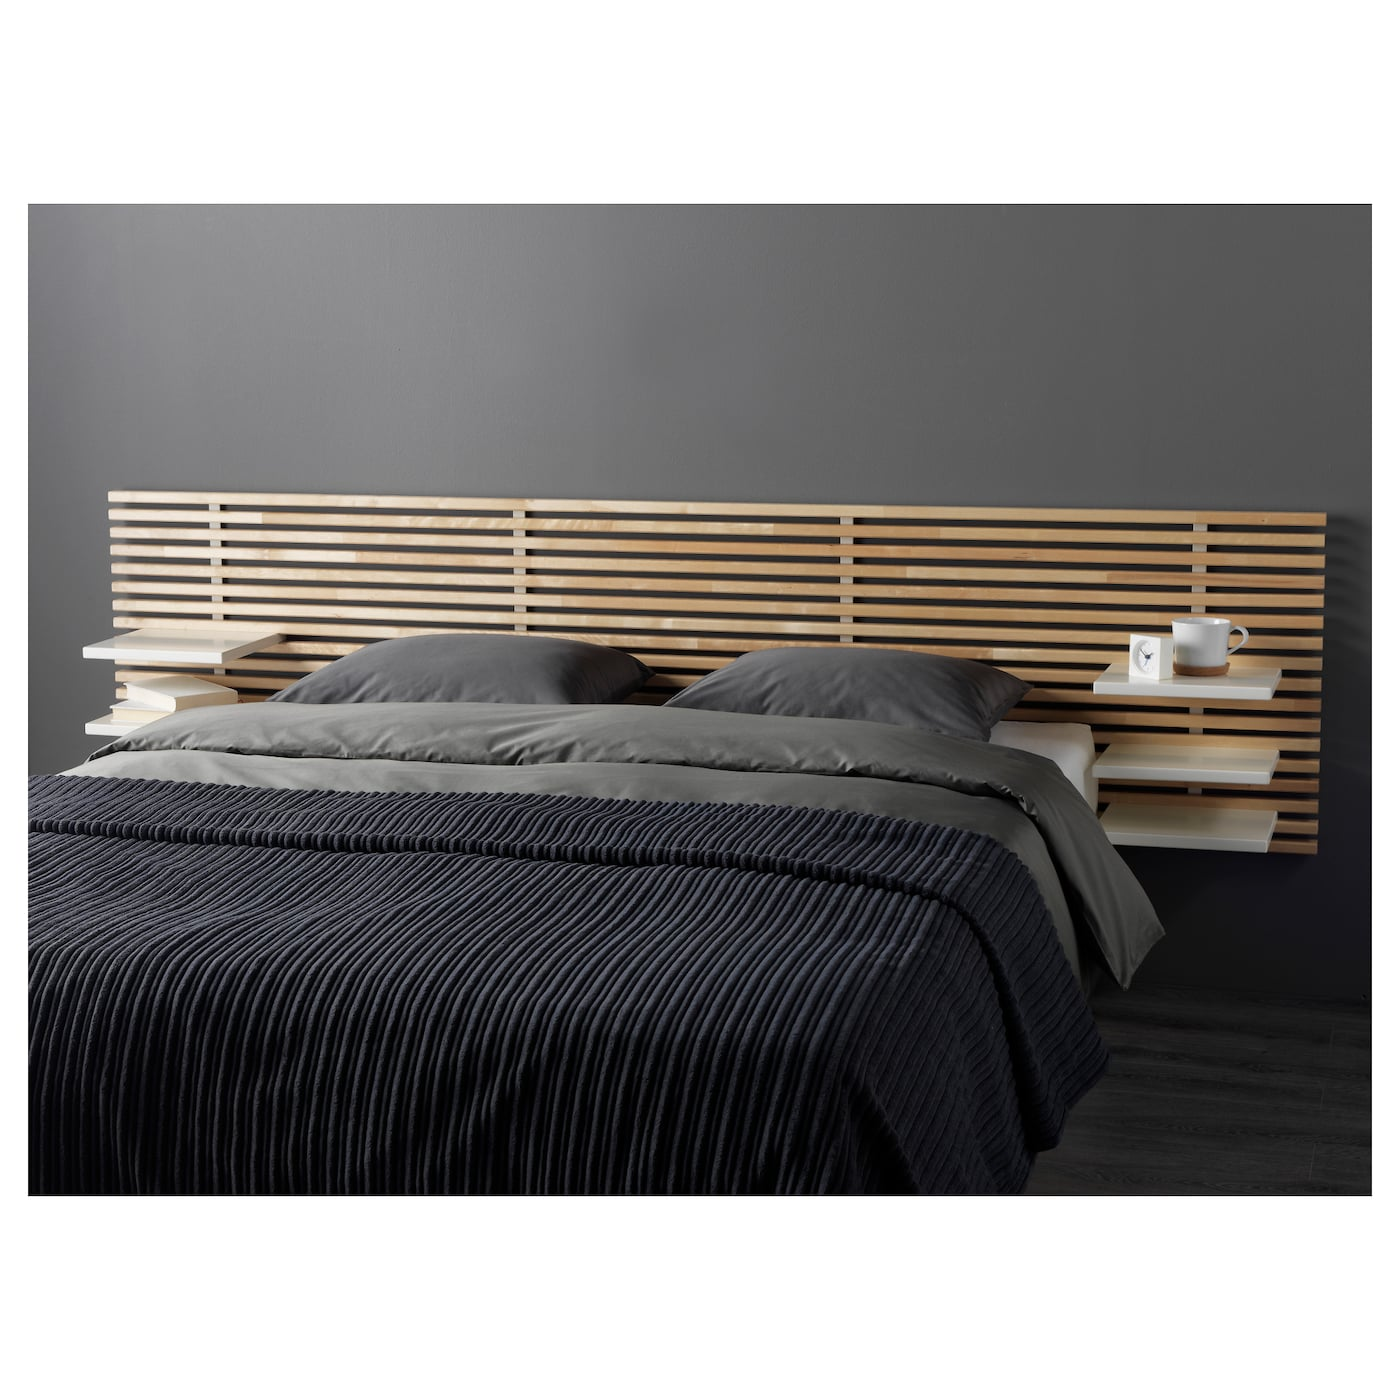 Mandal headboard birch white 240 cm ikea for Idee deco tete de lit